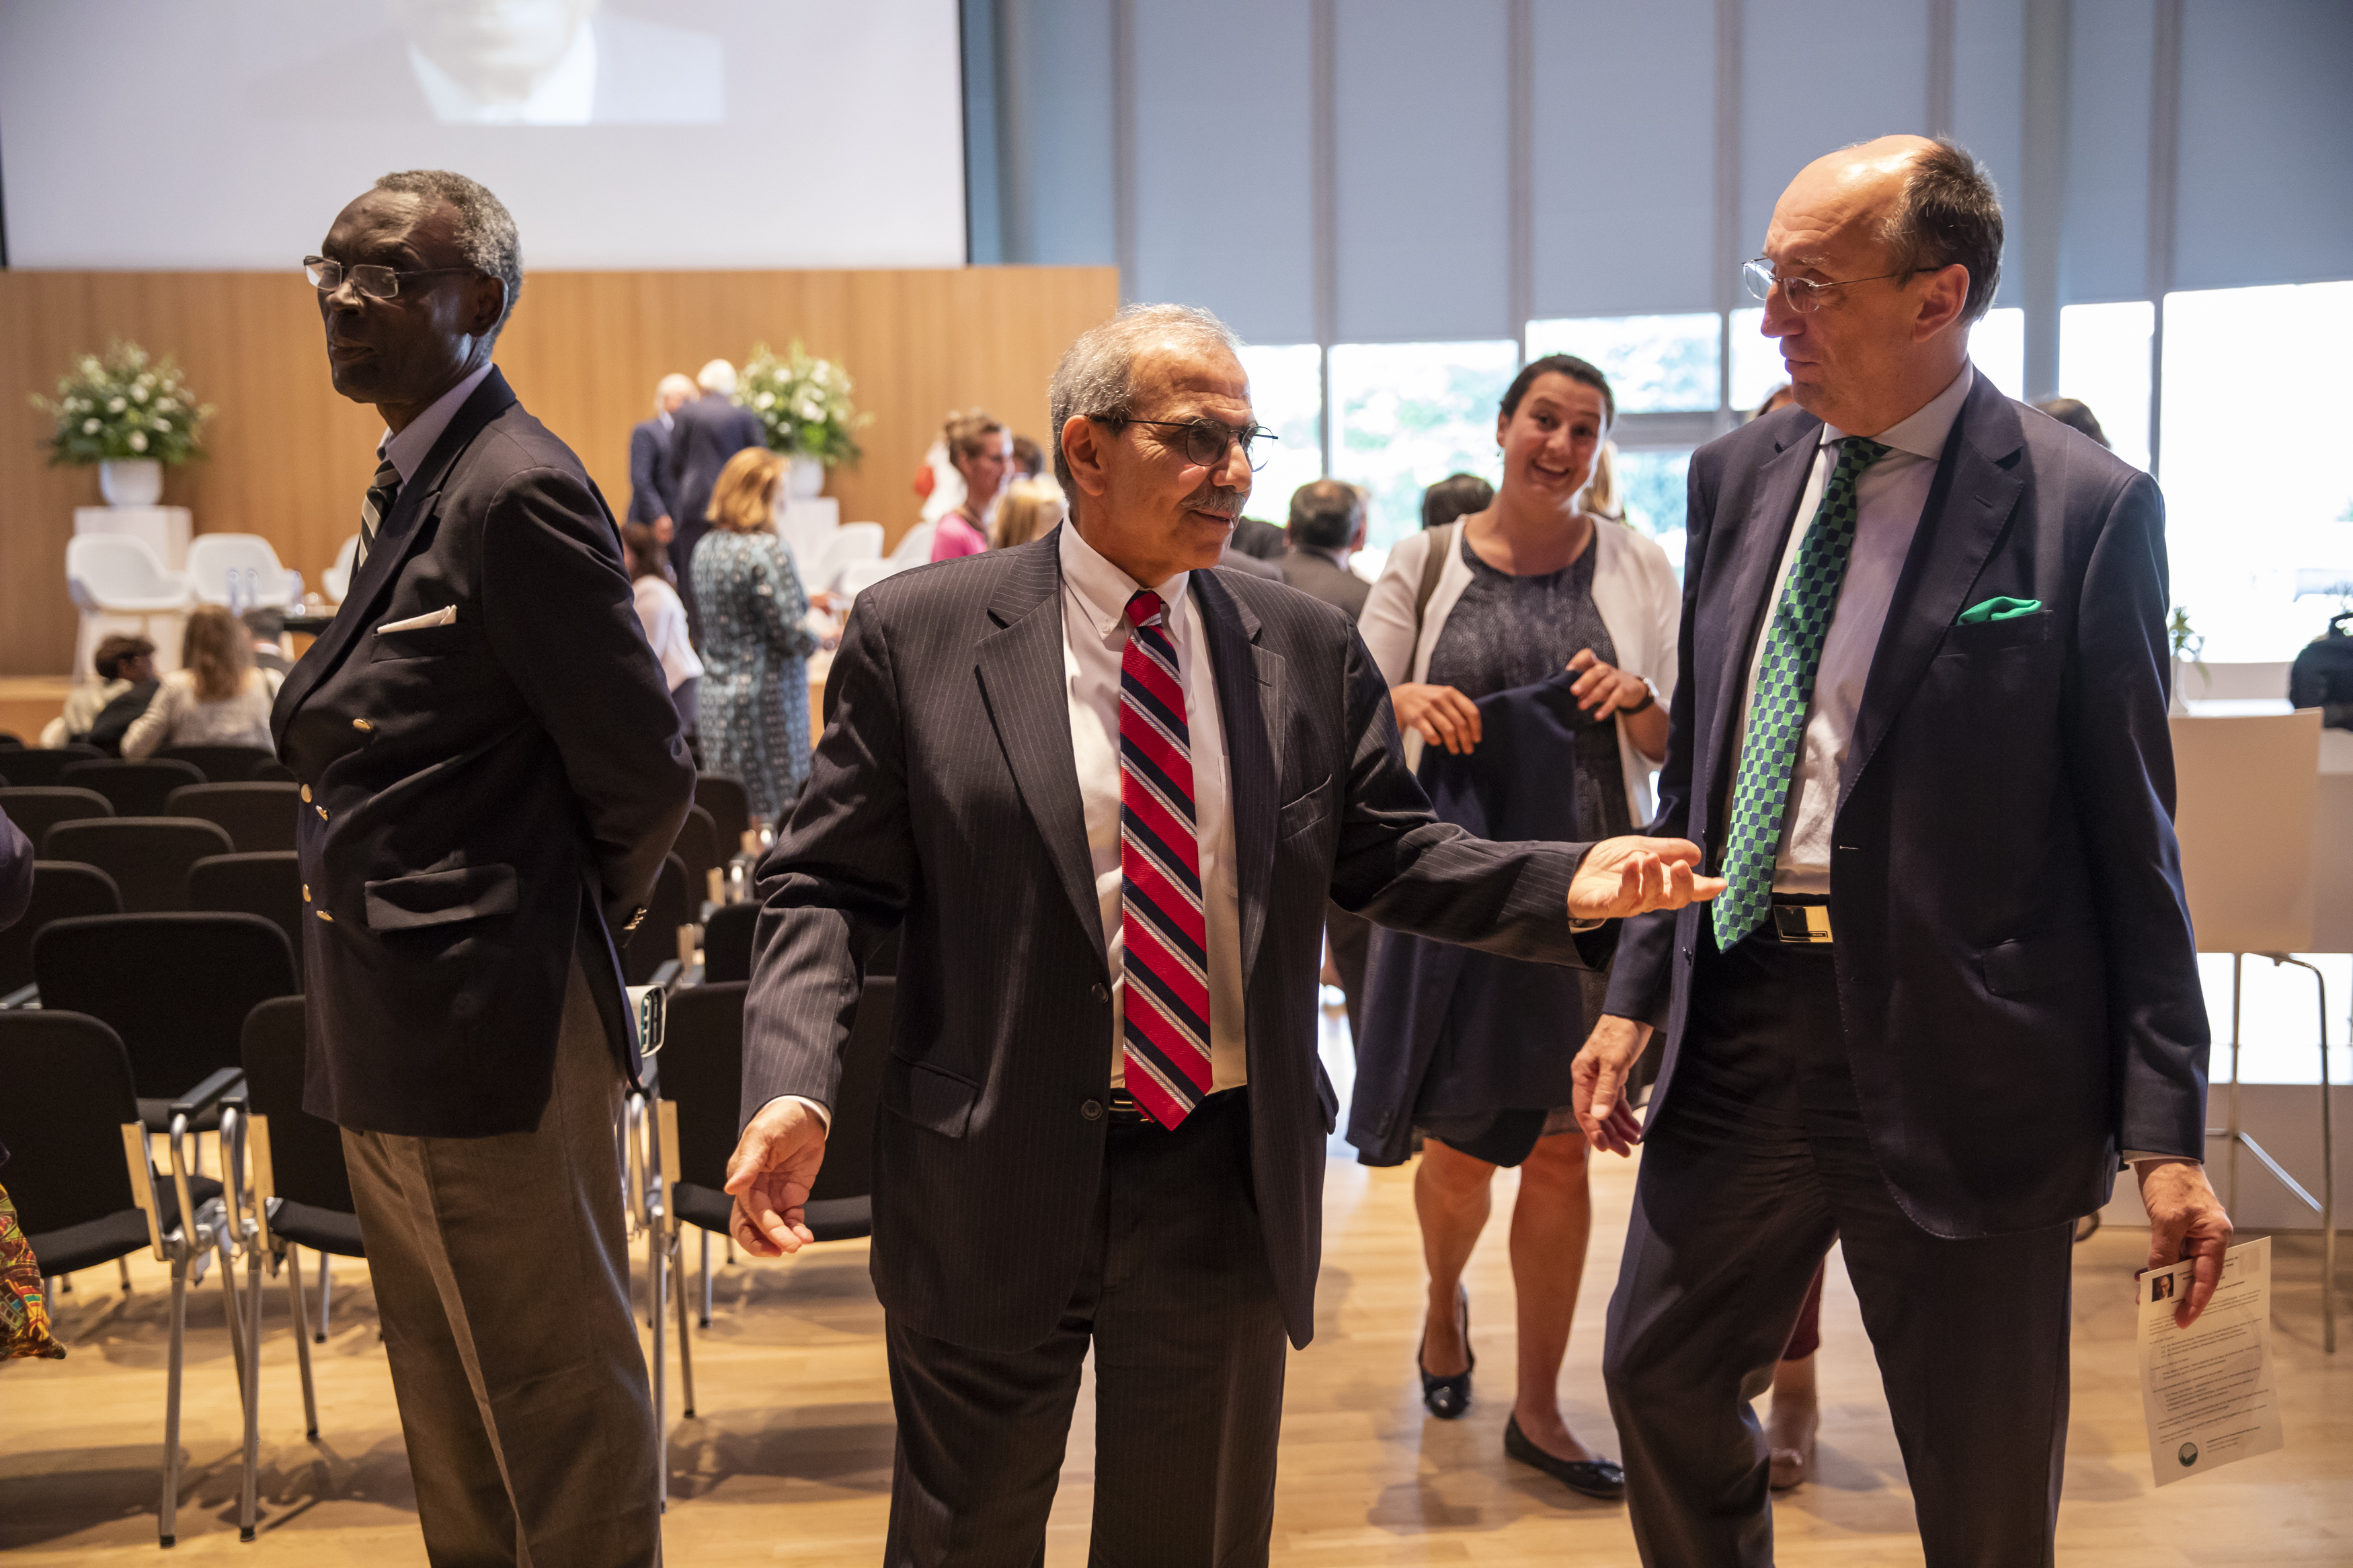 Dr. Boutros-Ghali Commemoration at The Hague Academy of International Law June 21 2018